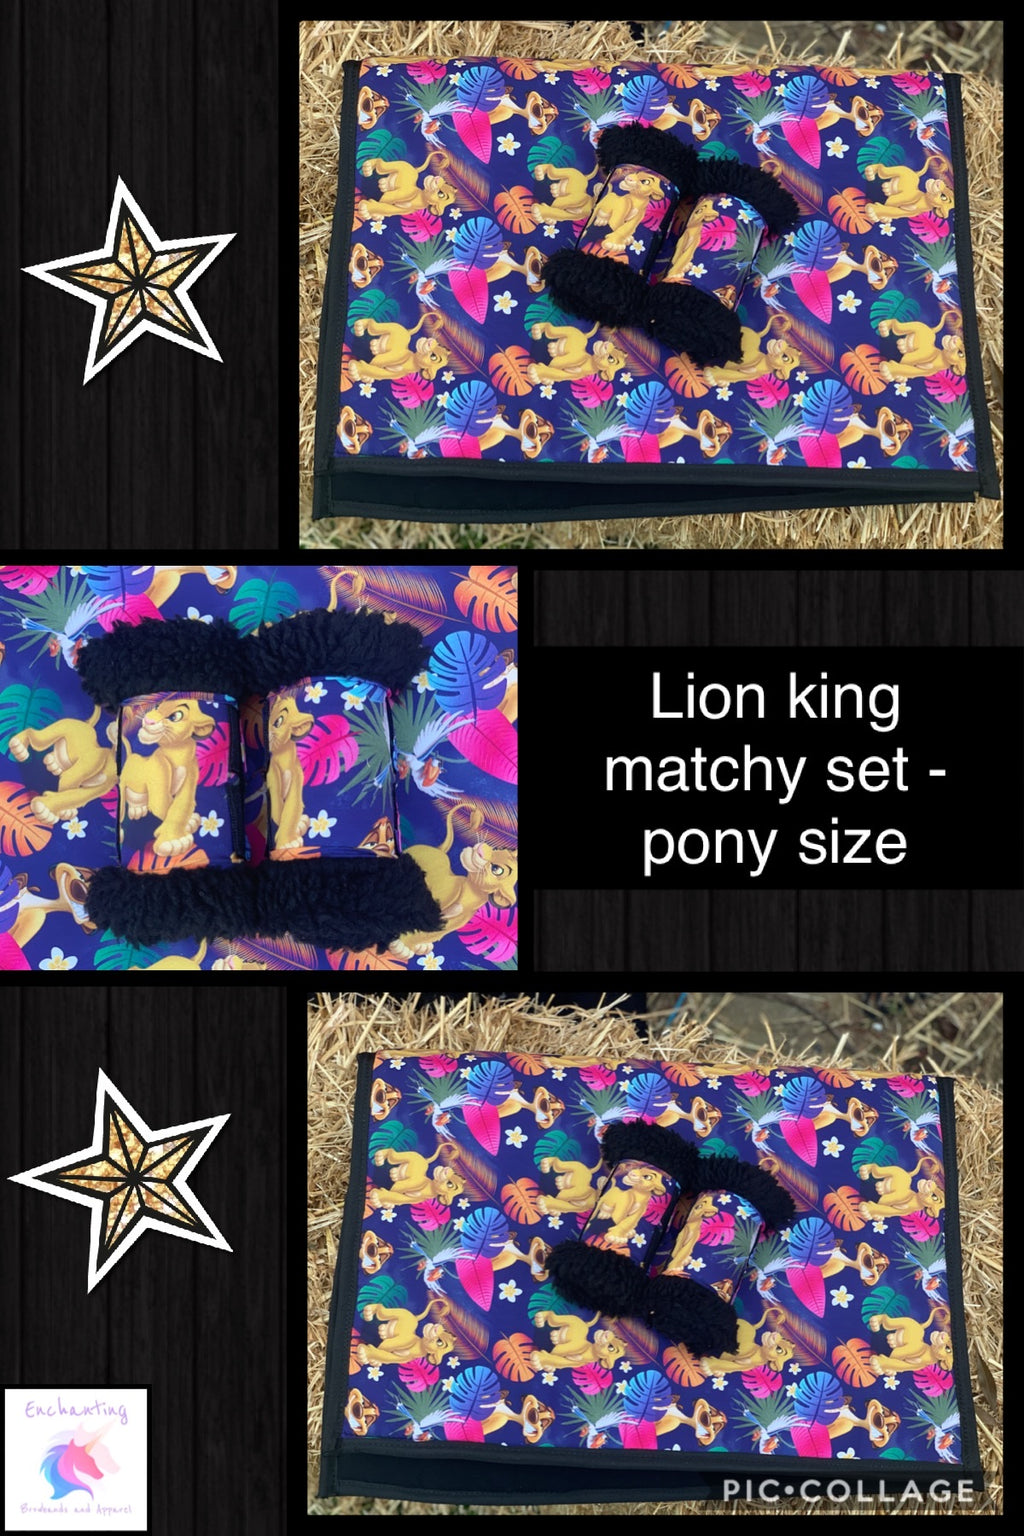 Lion king matchy set